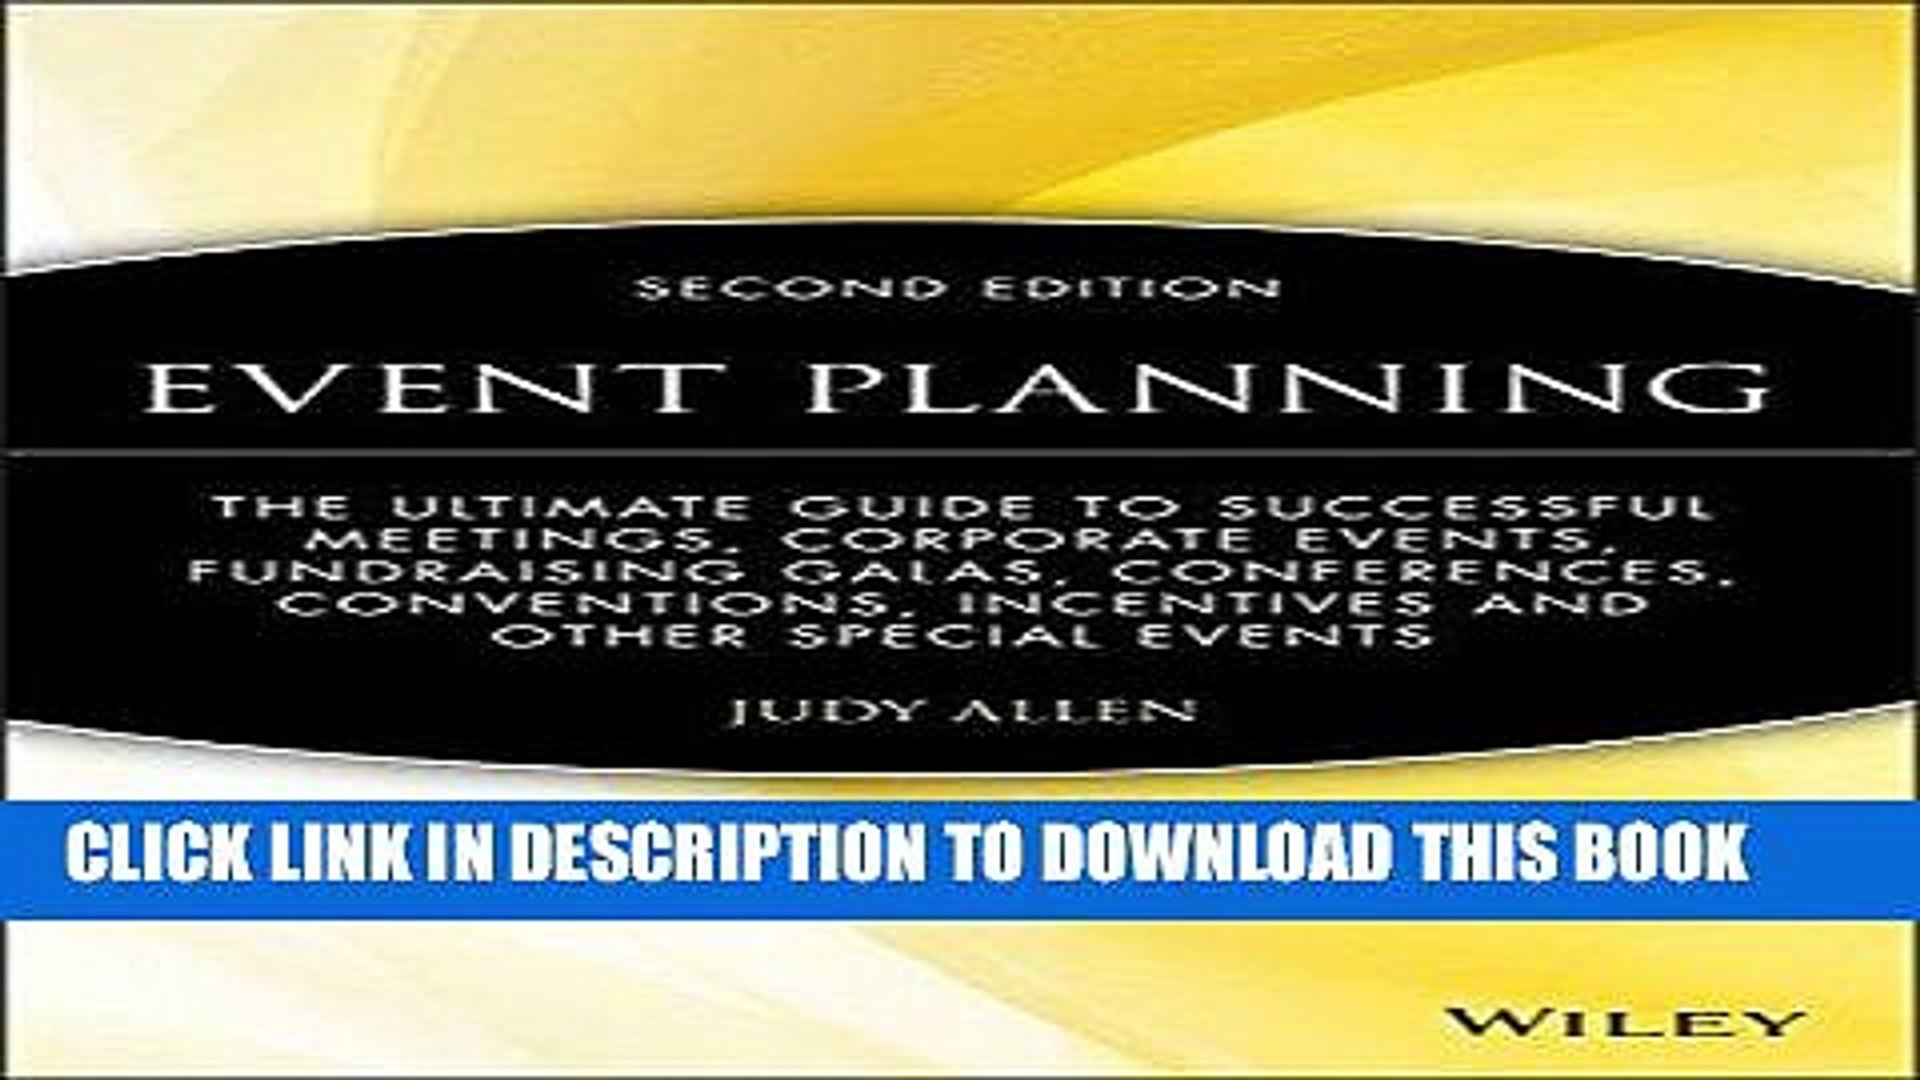 [New] Ebook Event Planning: The Ultimate Guide To Successful Meetings, Corporate Events,